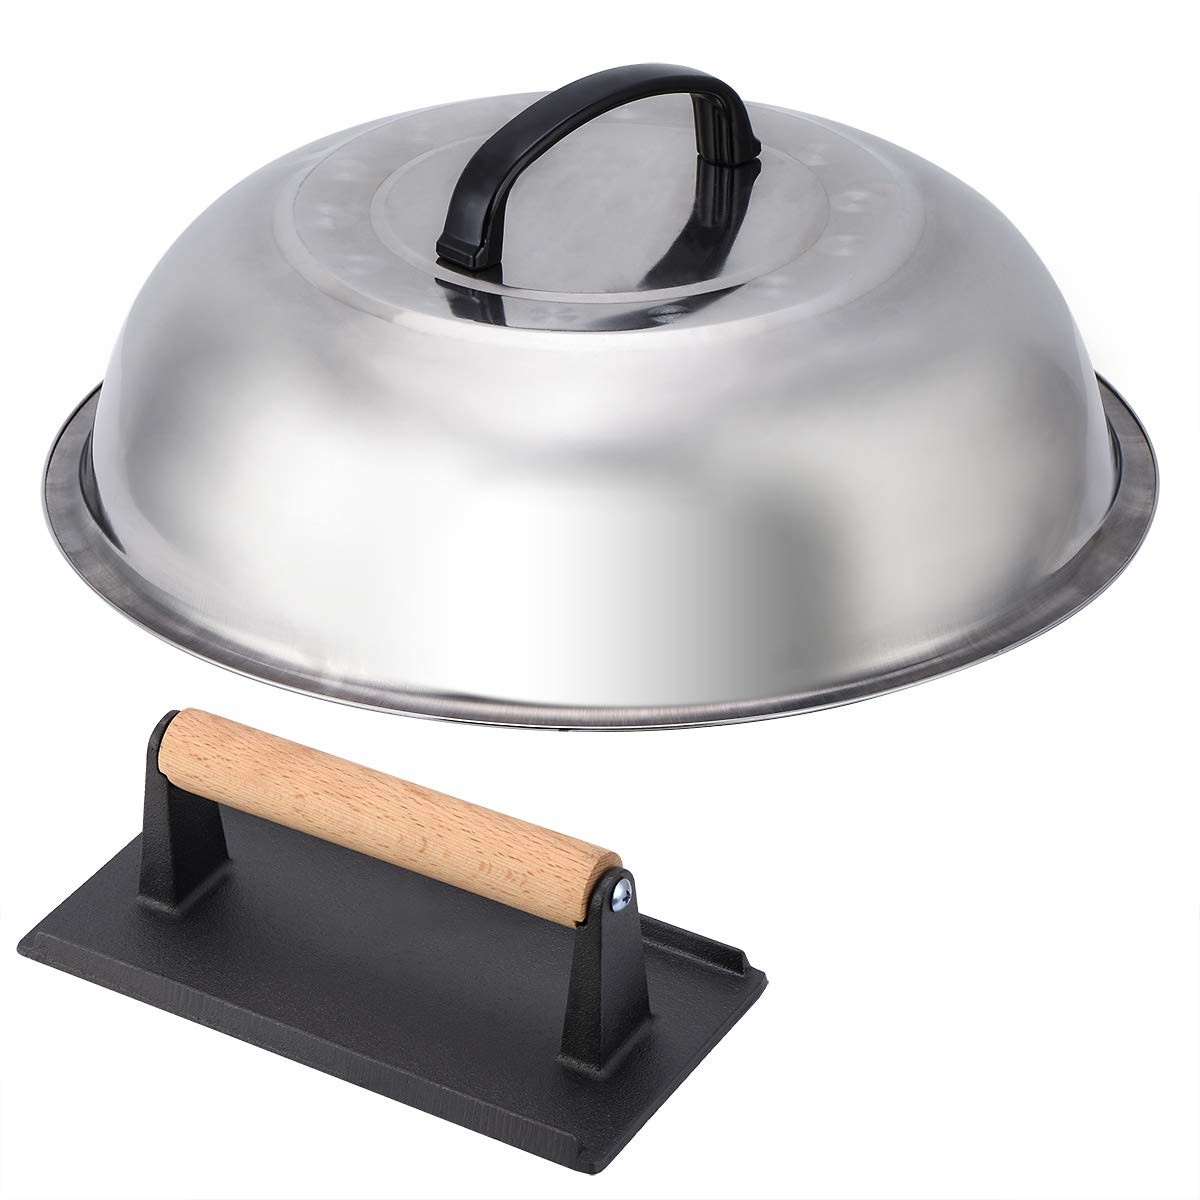 NEWANOVI Stainless Steel 12 Inch Basting Cover and Cast Iron Grill Press Kit for Hamburger Bacon Steak by NEWANOVI